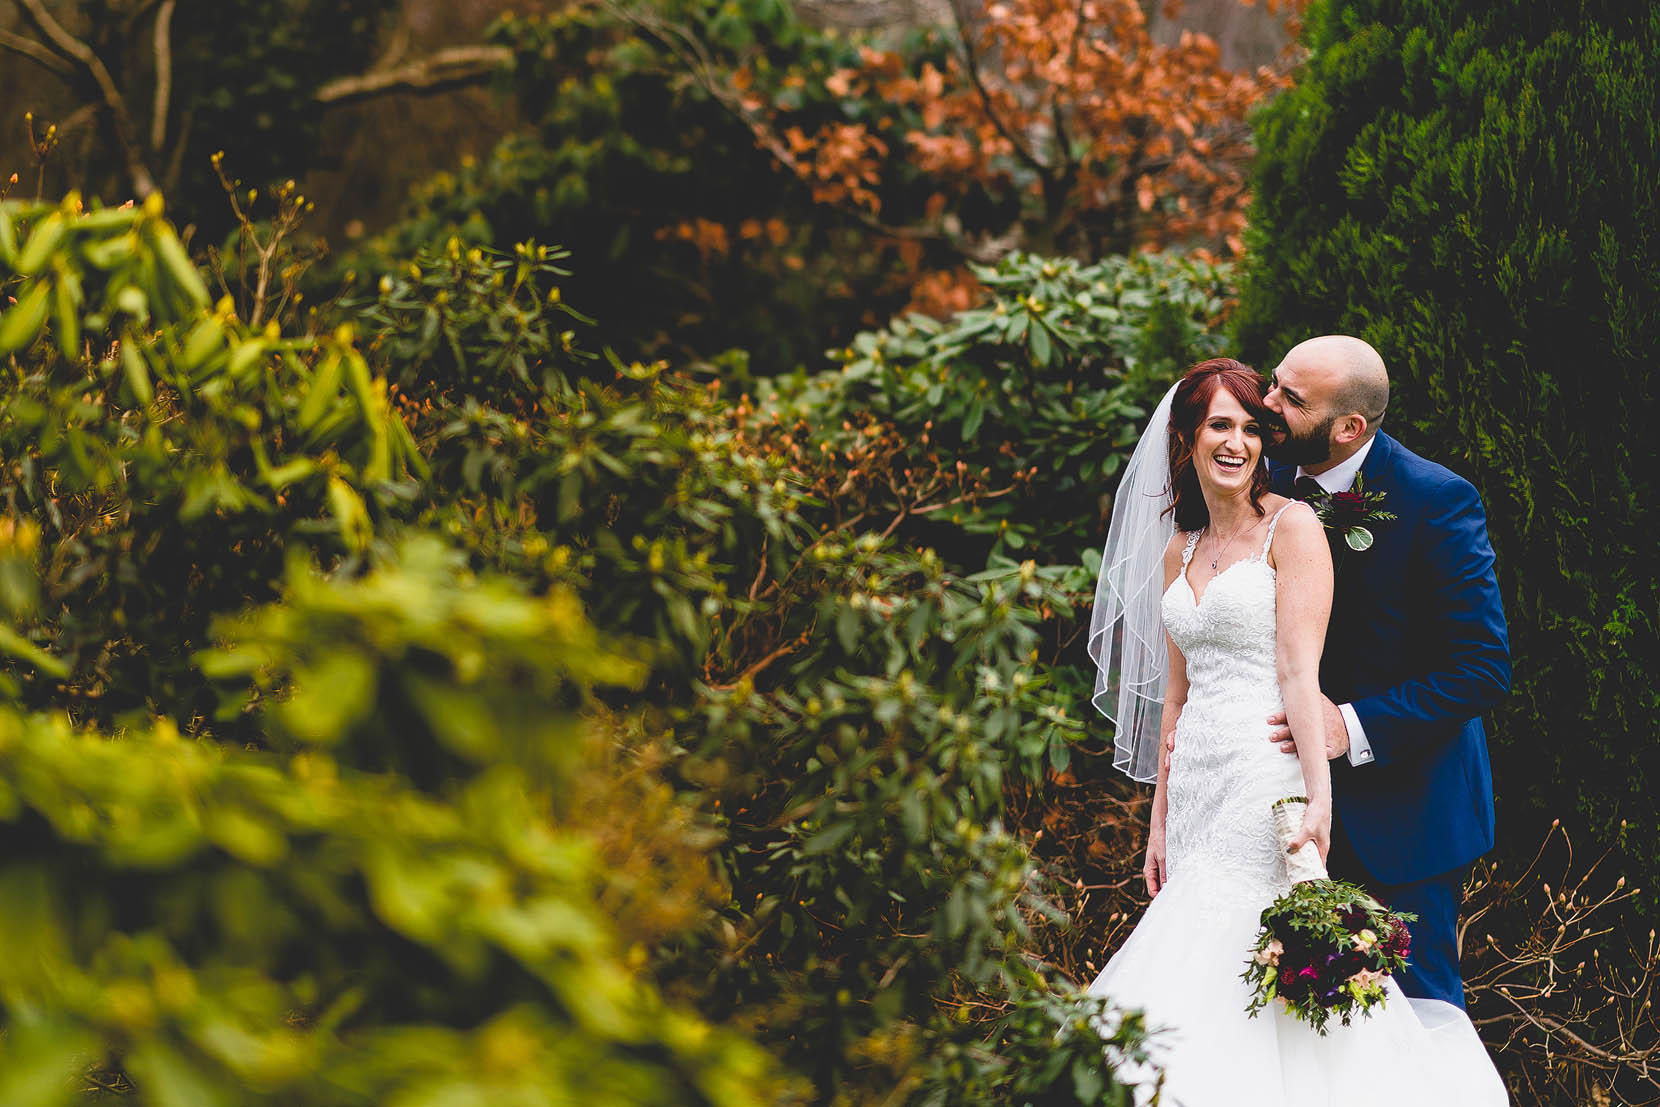 Marc and Helena having a cuddle in the garden at Rivervale barn wedding venue